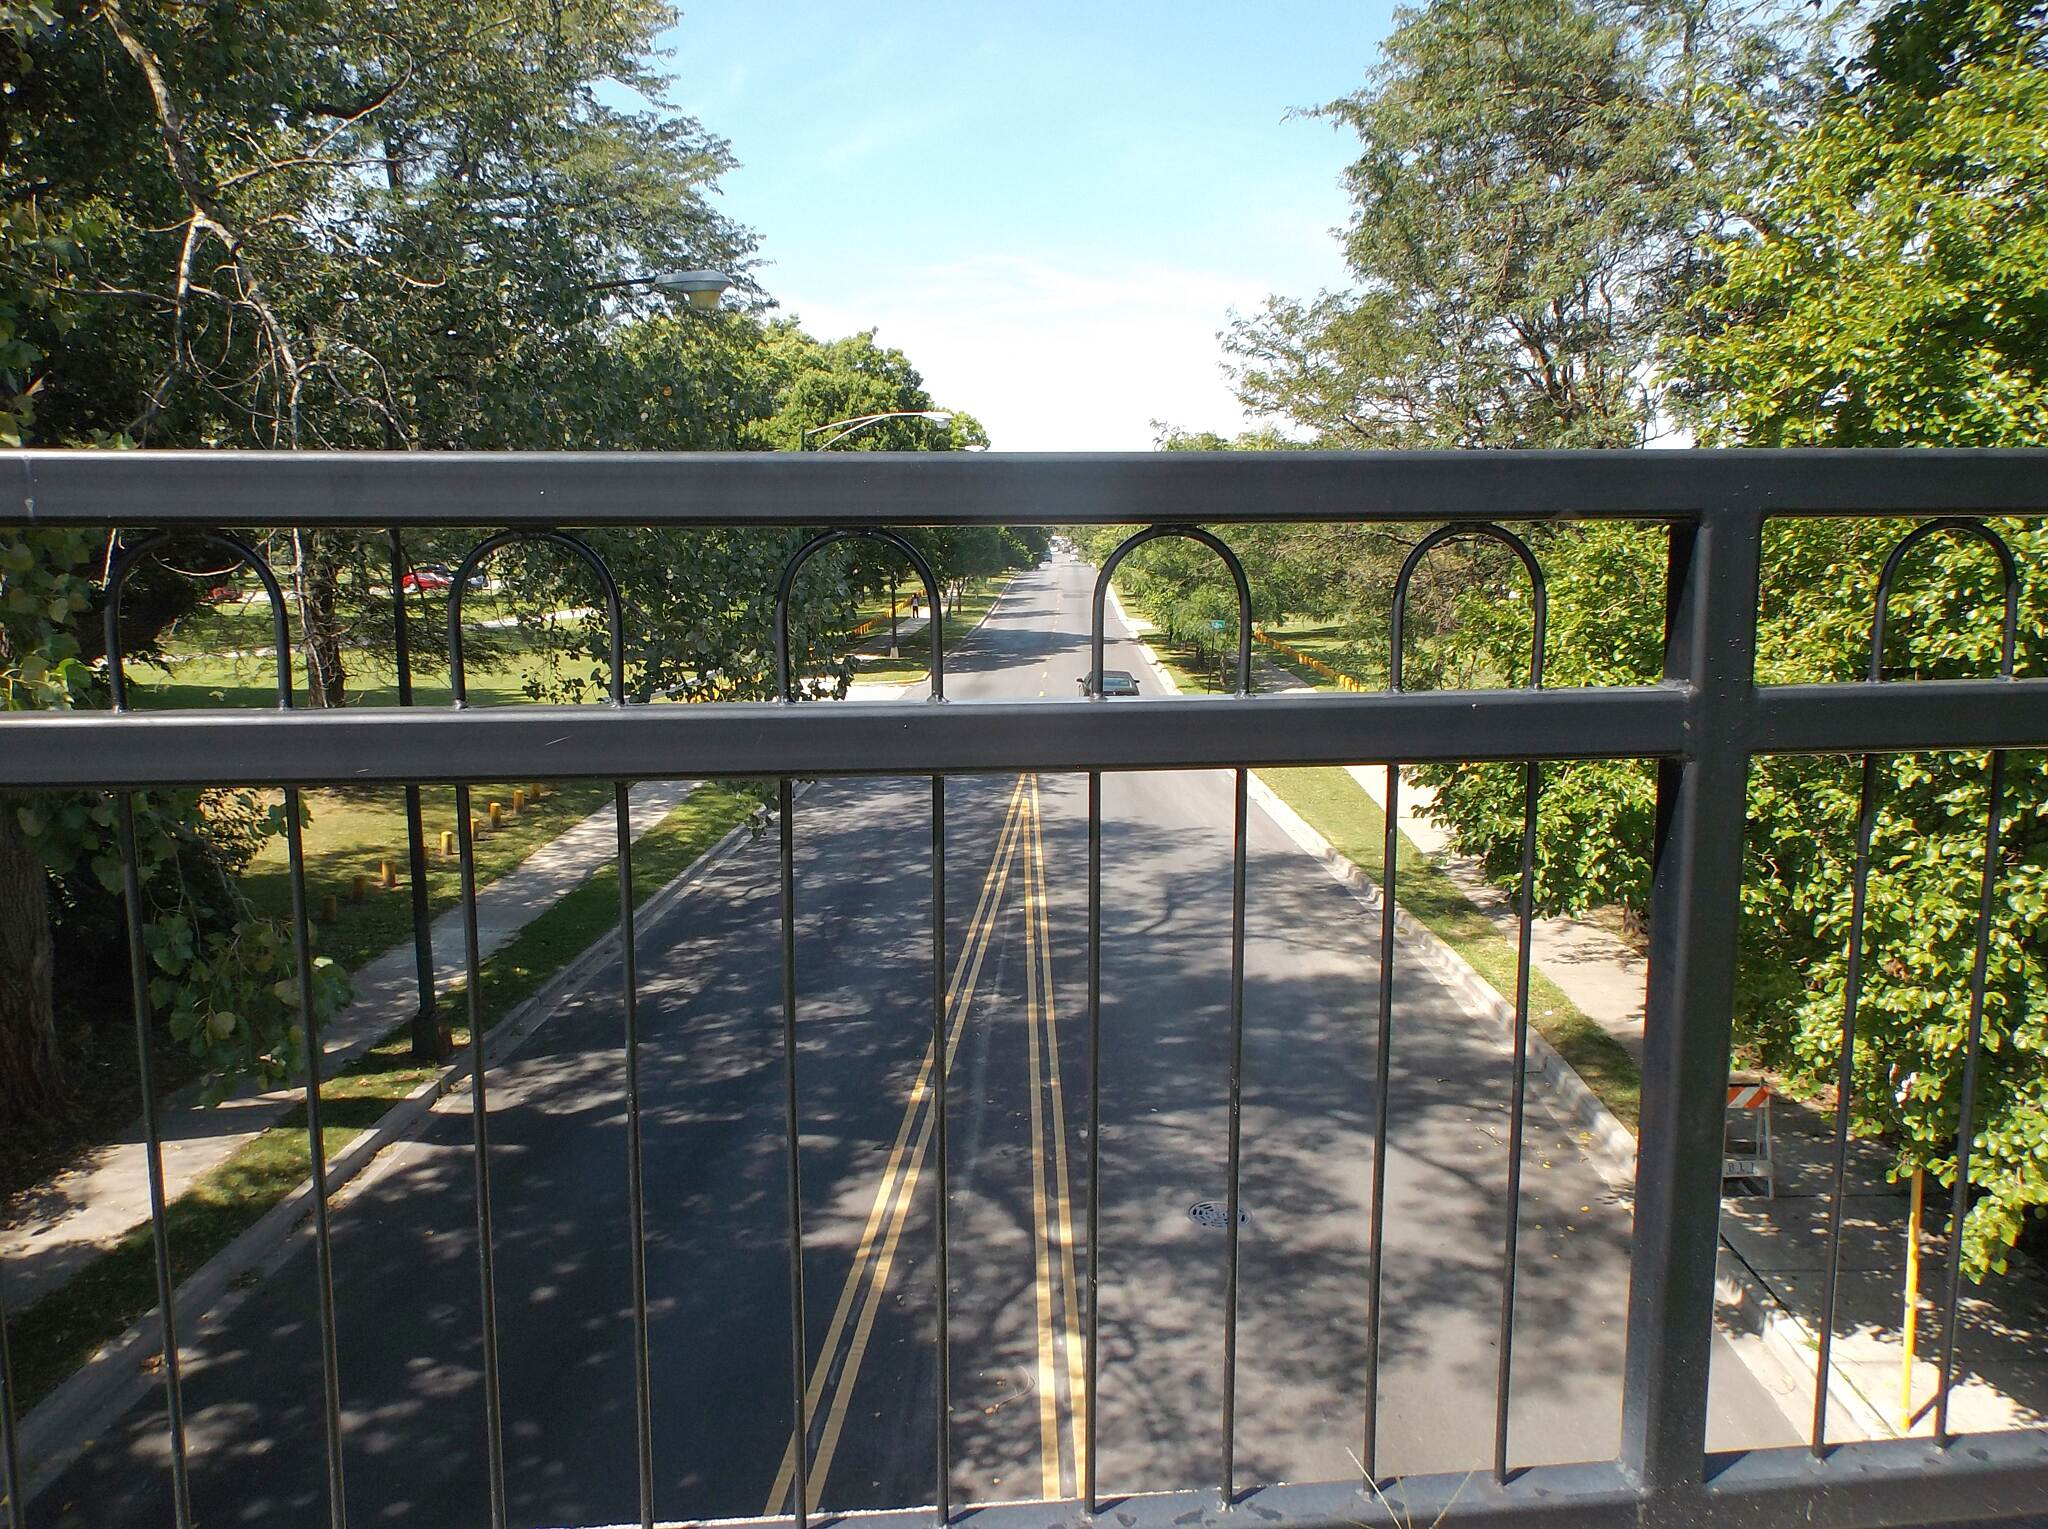 Major Taylor Trail From 83rd Street Bridge Elevated rail section at Dan Ryan Woods.